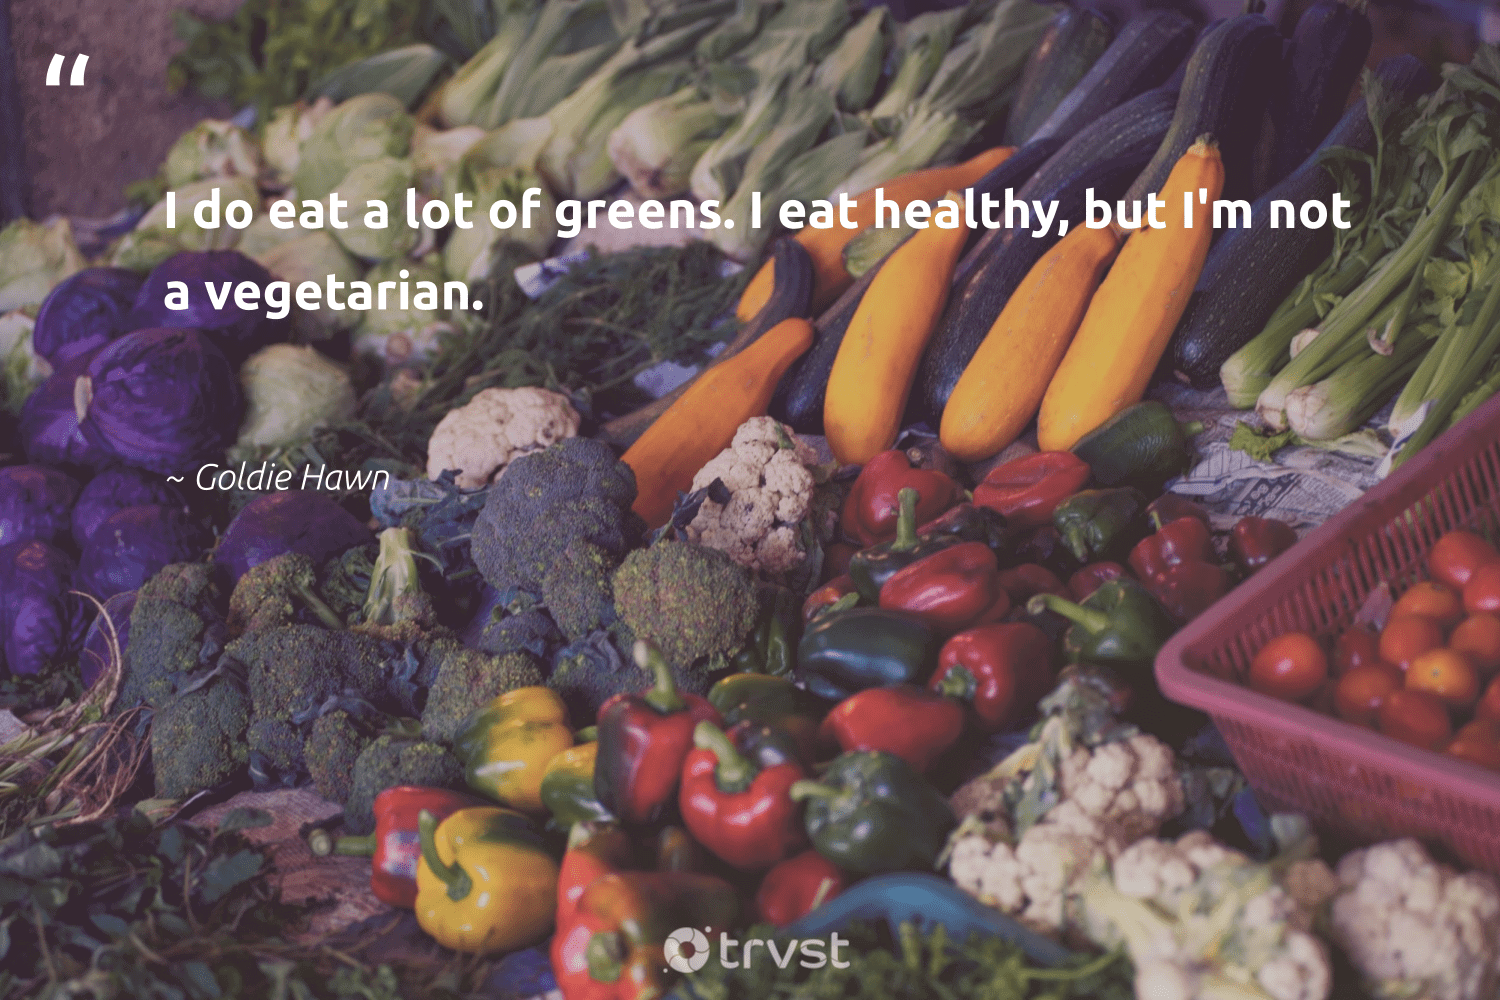 """""""I do eat a lot of greens. I eat healthy, but I'm not a vegetarian.""""  - Goldie Hawn #trvst #quotes #healthy #vegetarian #wellness #greenliving #health #bethechange #wellbeing #fashion #changemakers #socialimpact"""